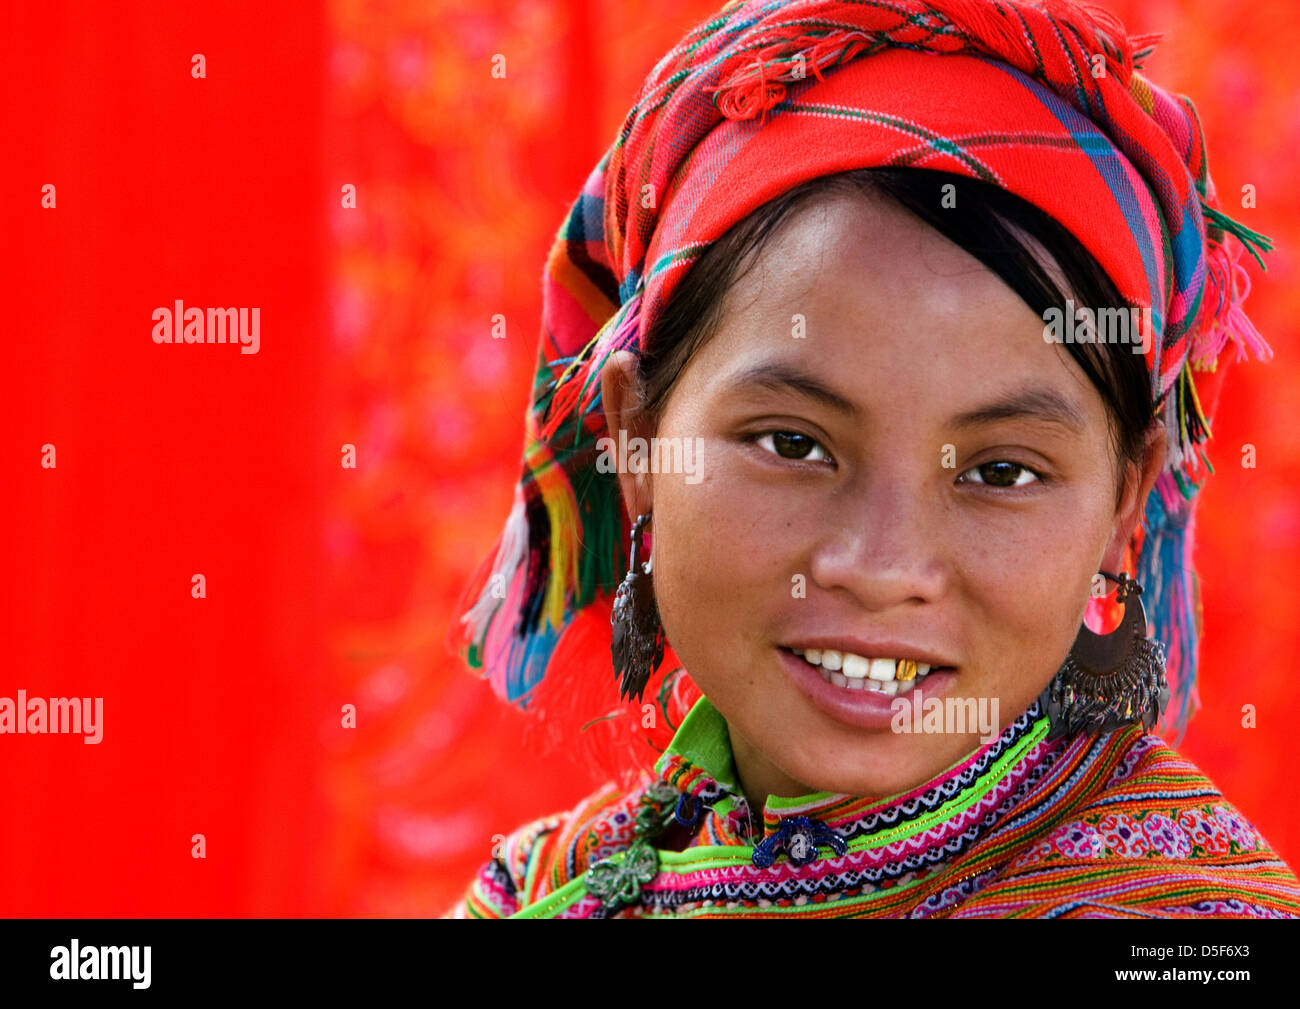 Market Woman of H'mong (hmong) Hill Tribe on Bac Ha ethnic market in Vietnam, Asia - Stock Image